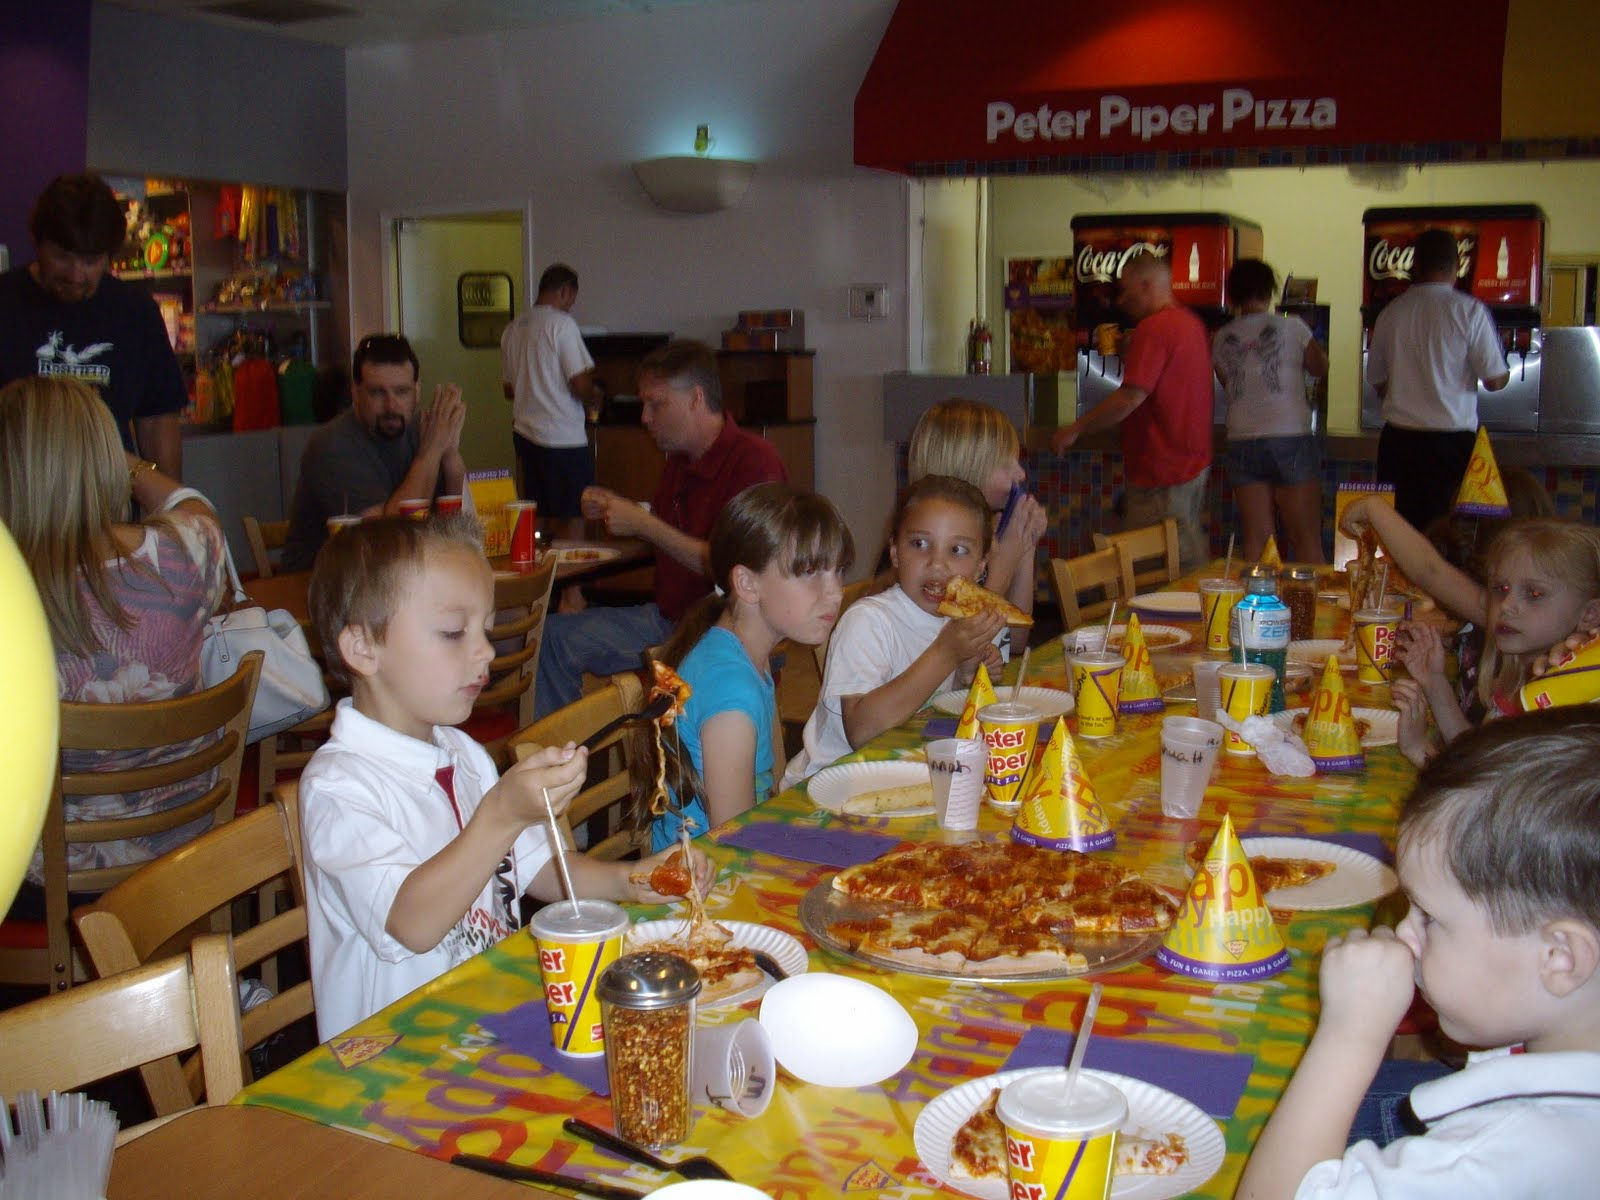 picture about Peter Piper Pizza Printable Coupons named Discount coupons for peter piper pizza bash - Reasonably priced weekend offers